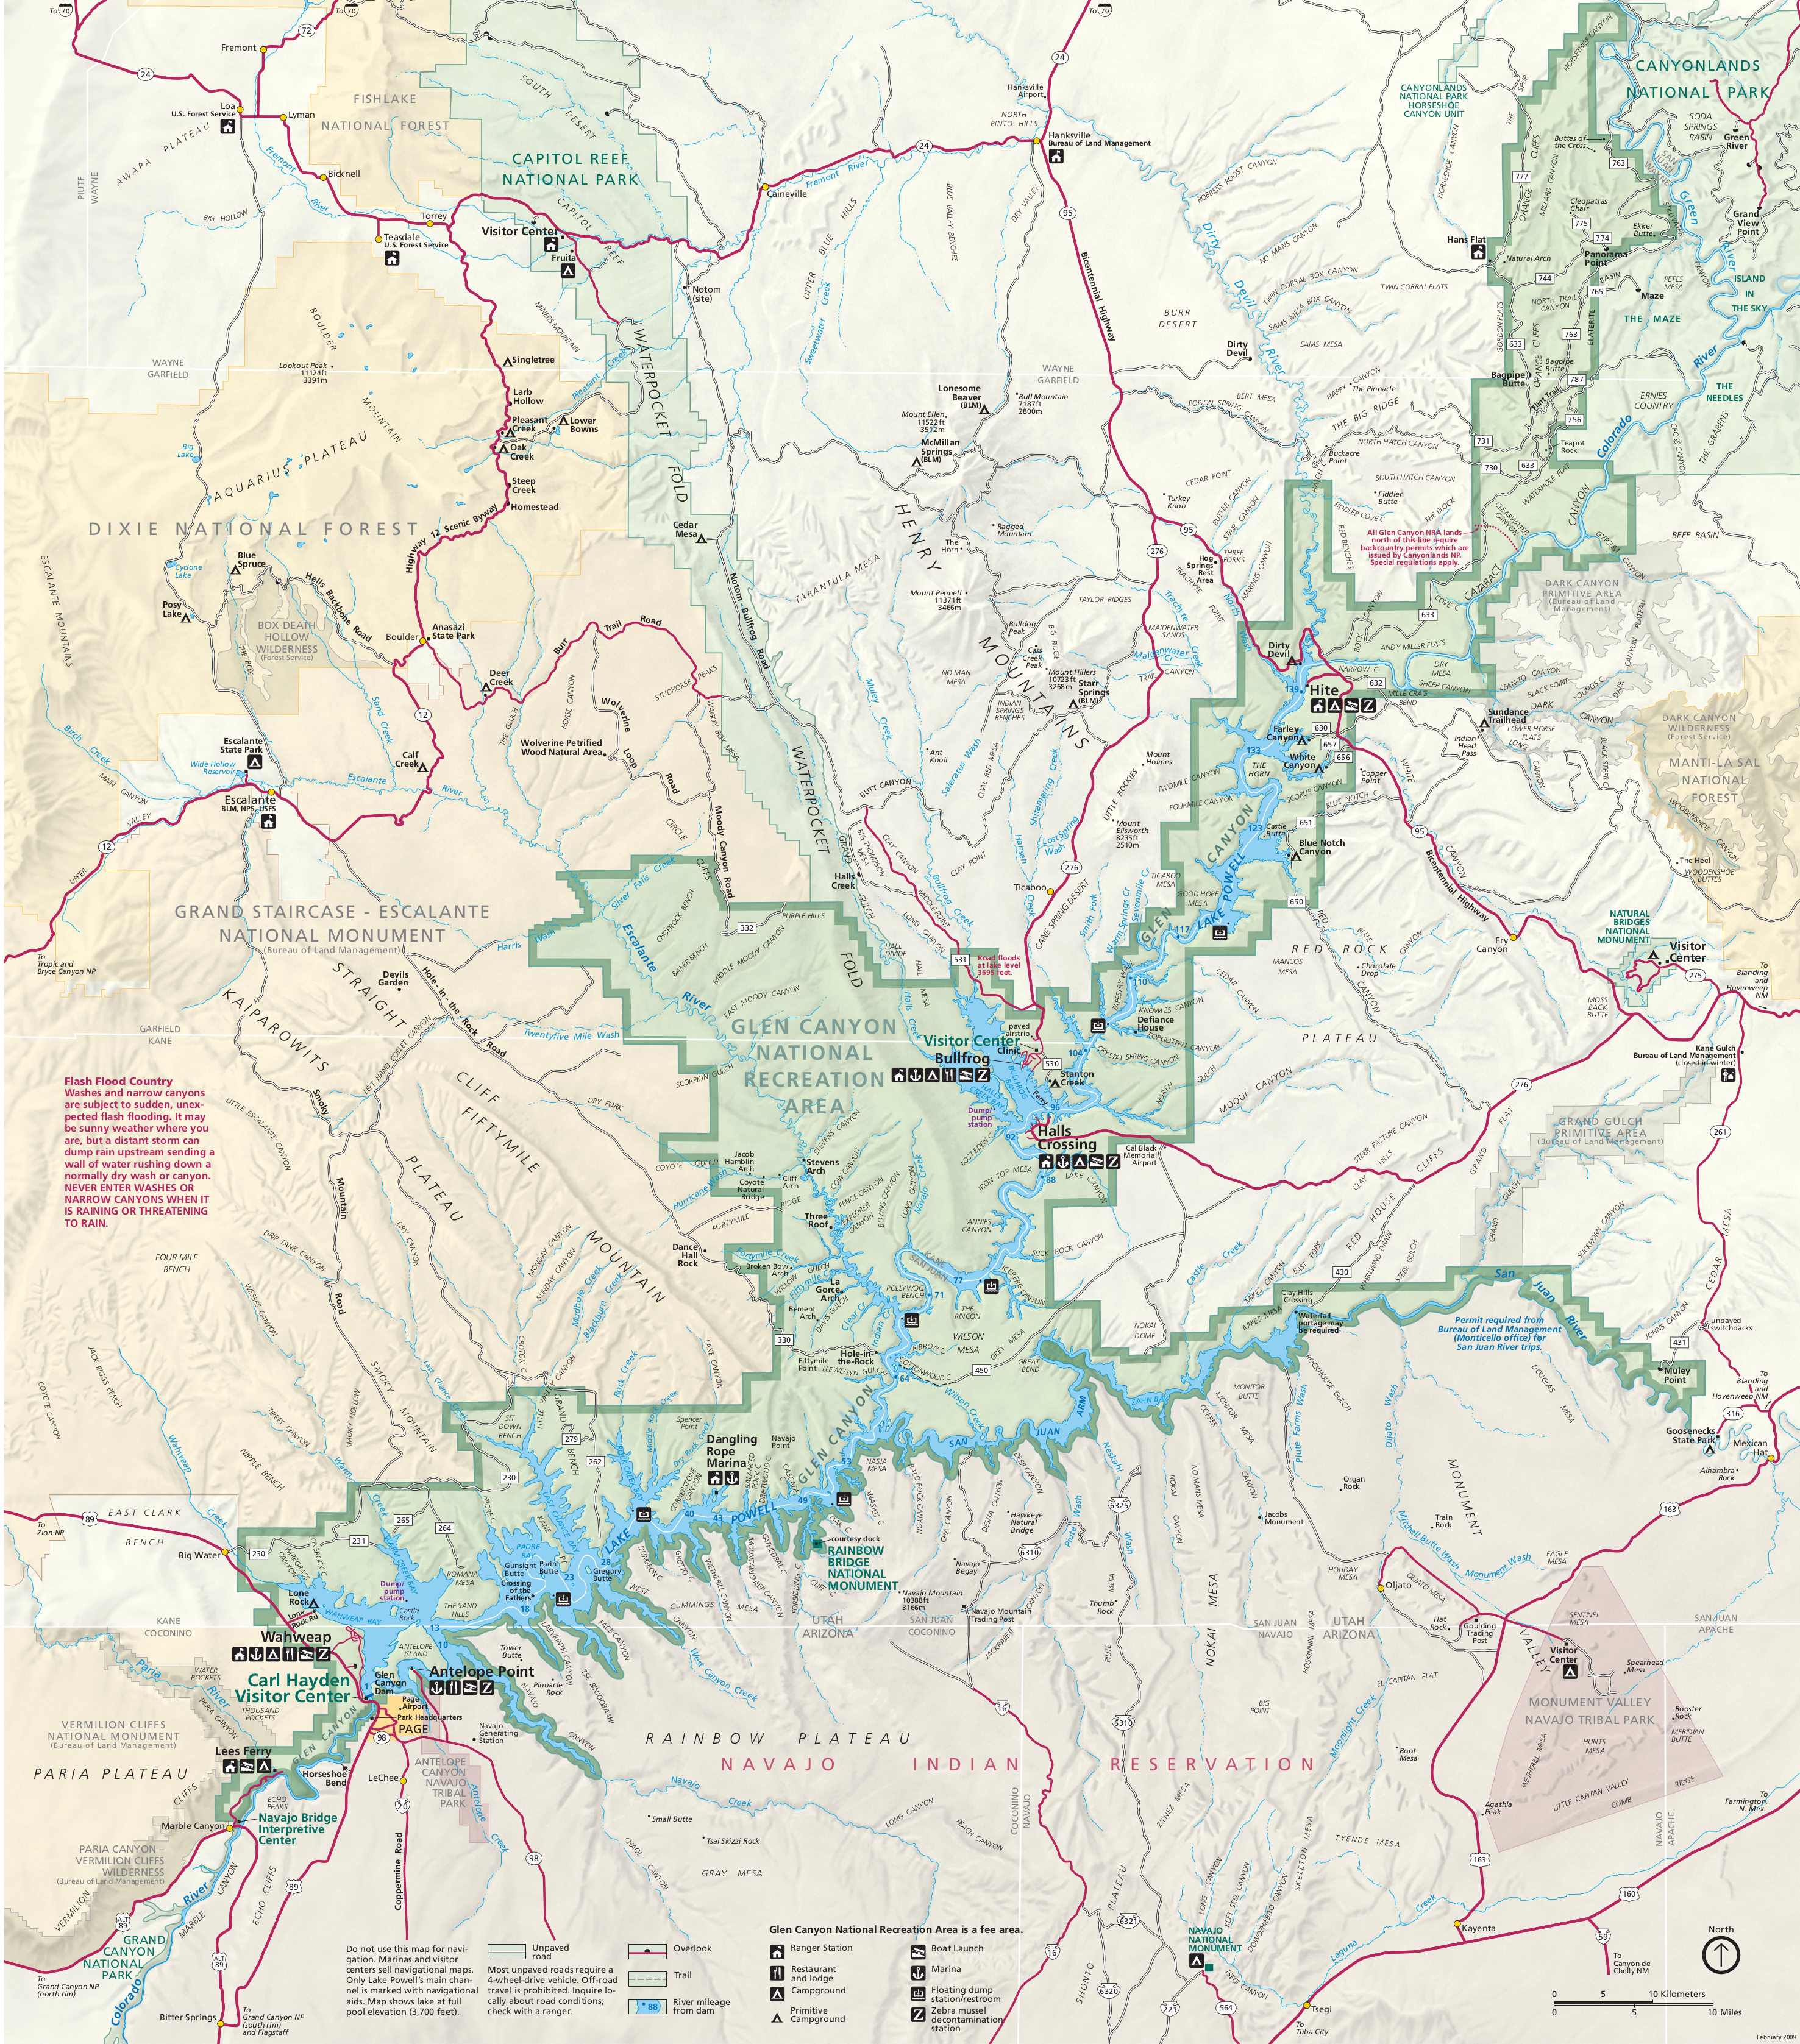 Glen Canyon Maps NPMapscom just free maps period